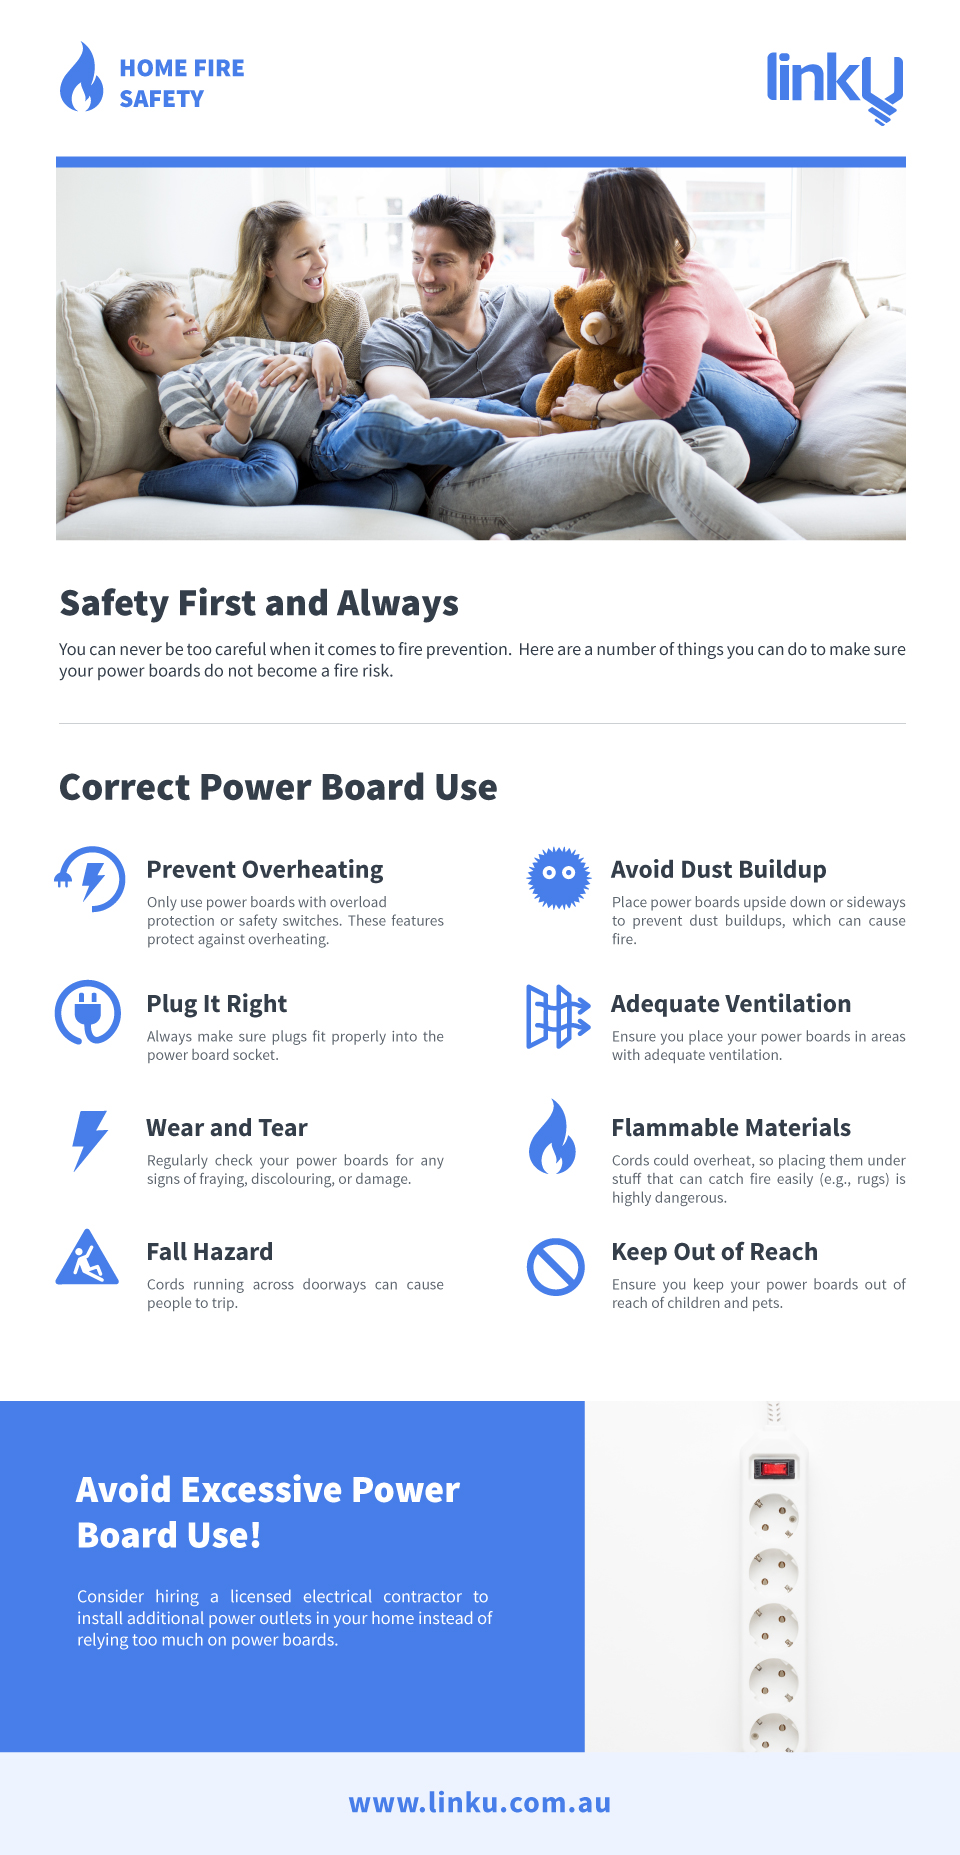 Home-fire-safety_Safe-power-board